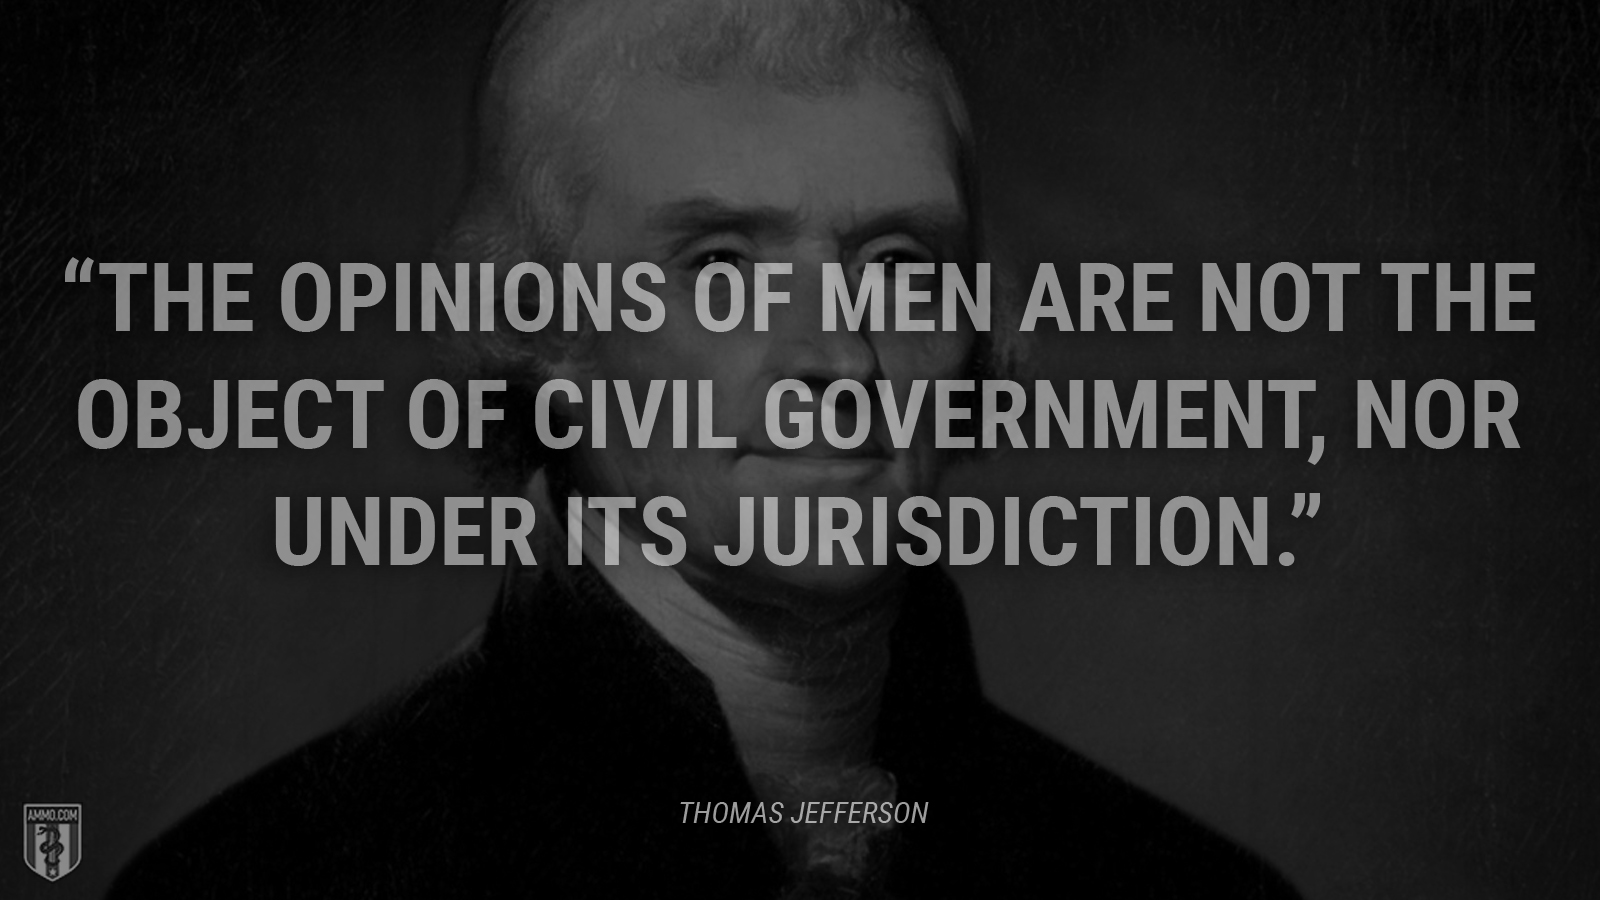 """The opinions of men are not the object of civil government, nor under its jurisdiction."" - Thomas Jefferson"